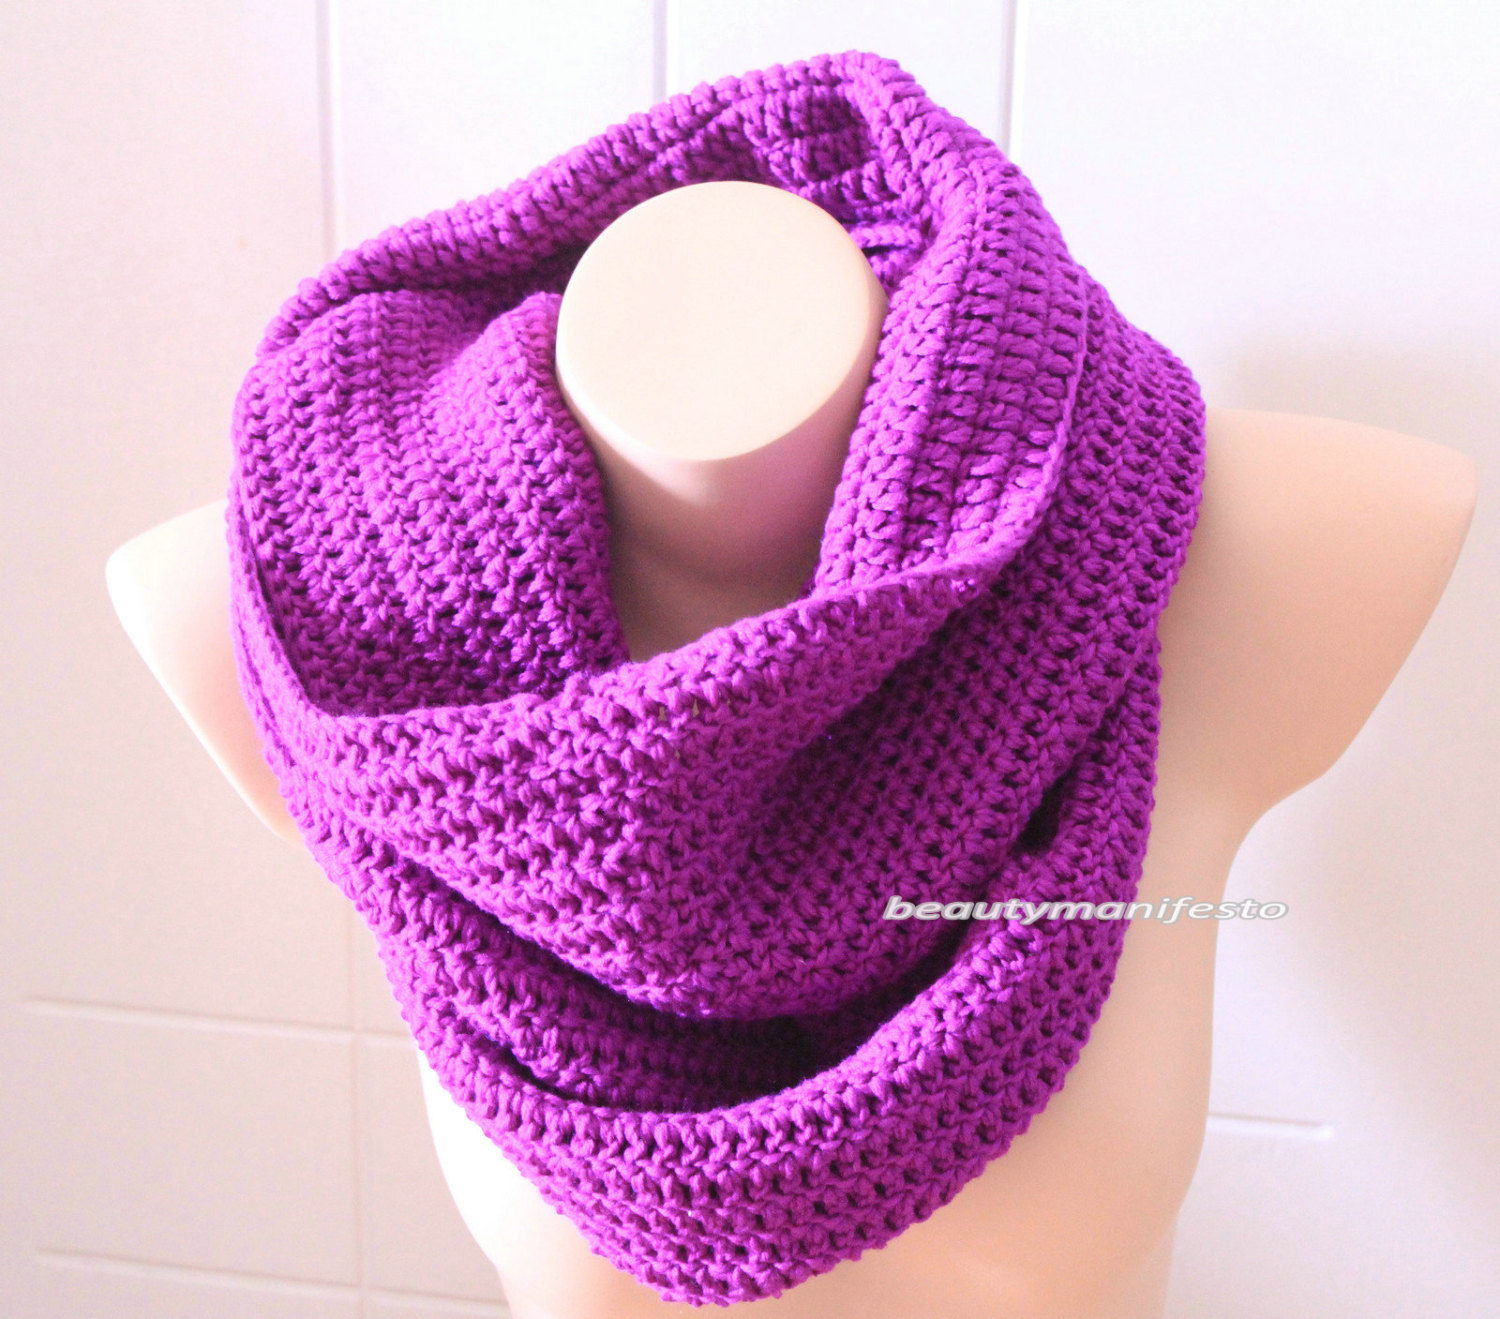 Oversized knit scarf,oversized chunky infinity scarf in purple color,crochet infinity scarves